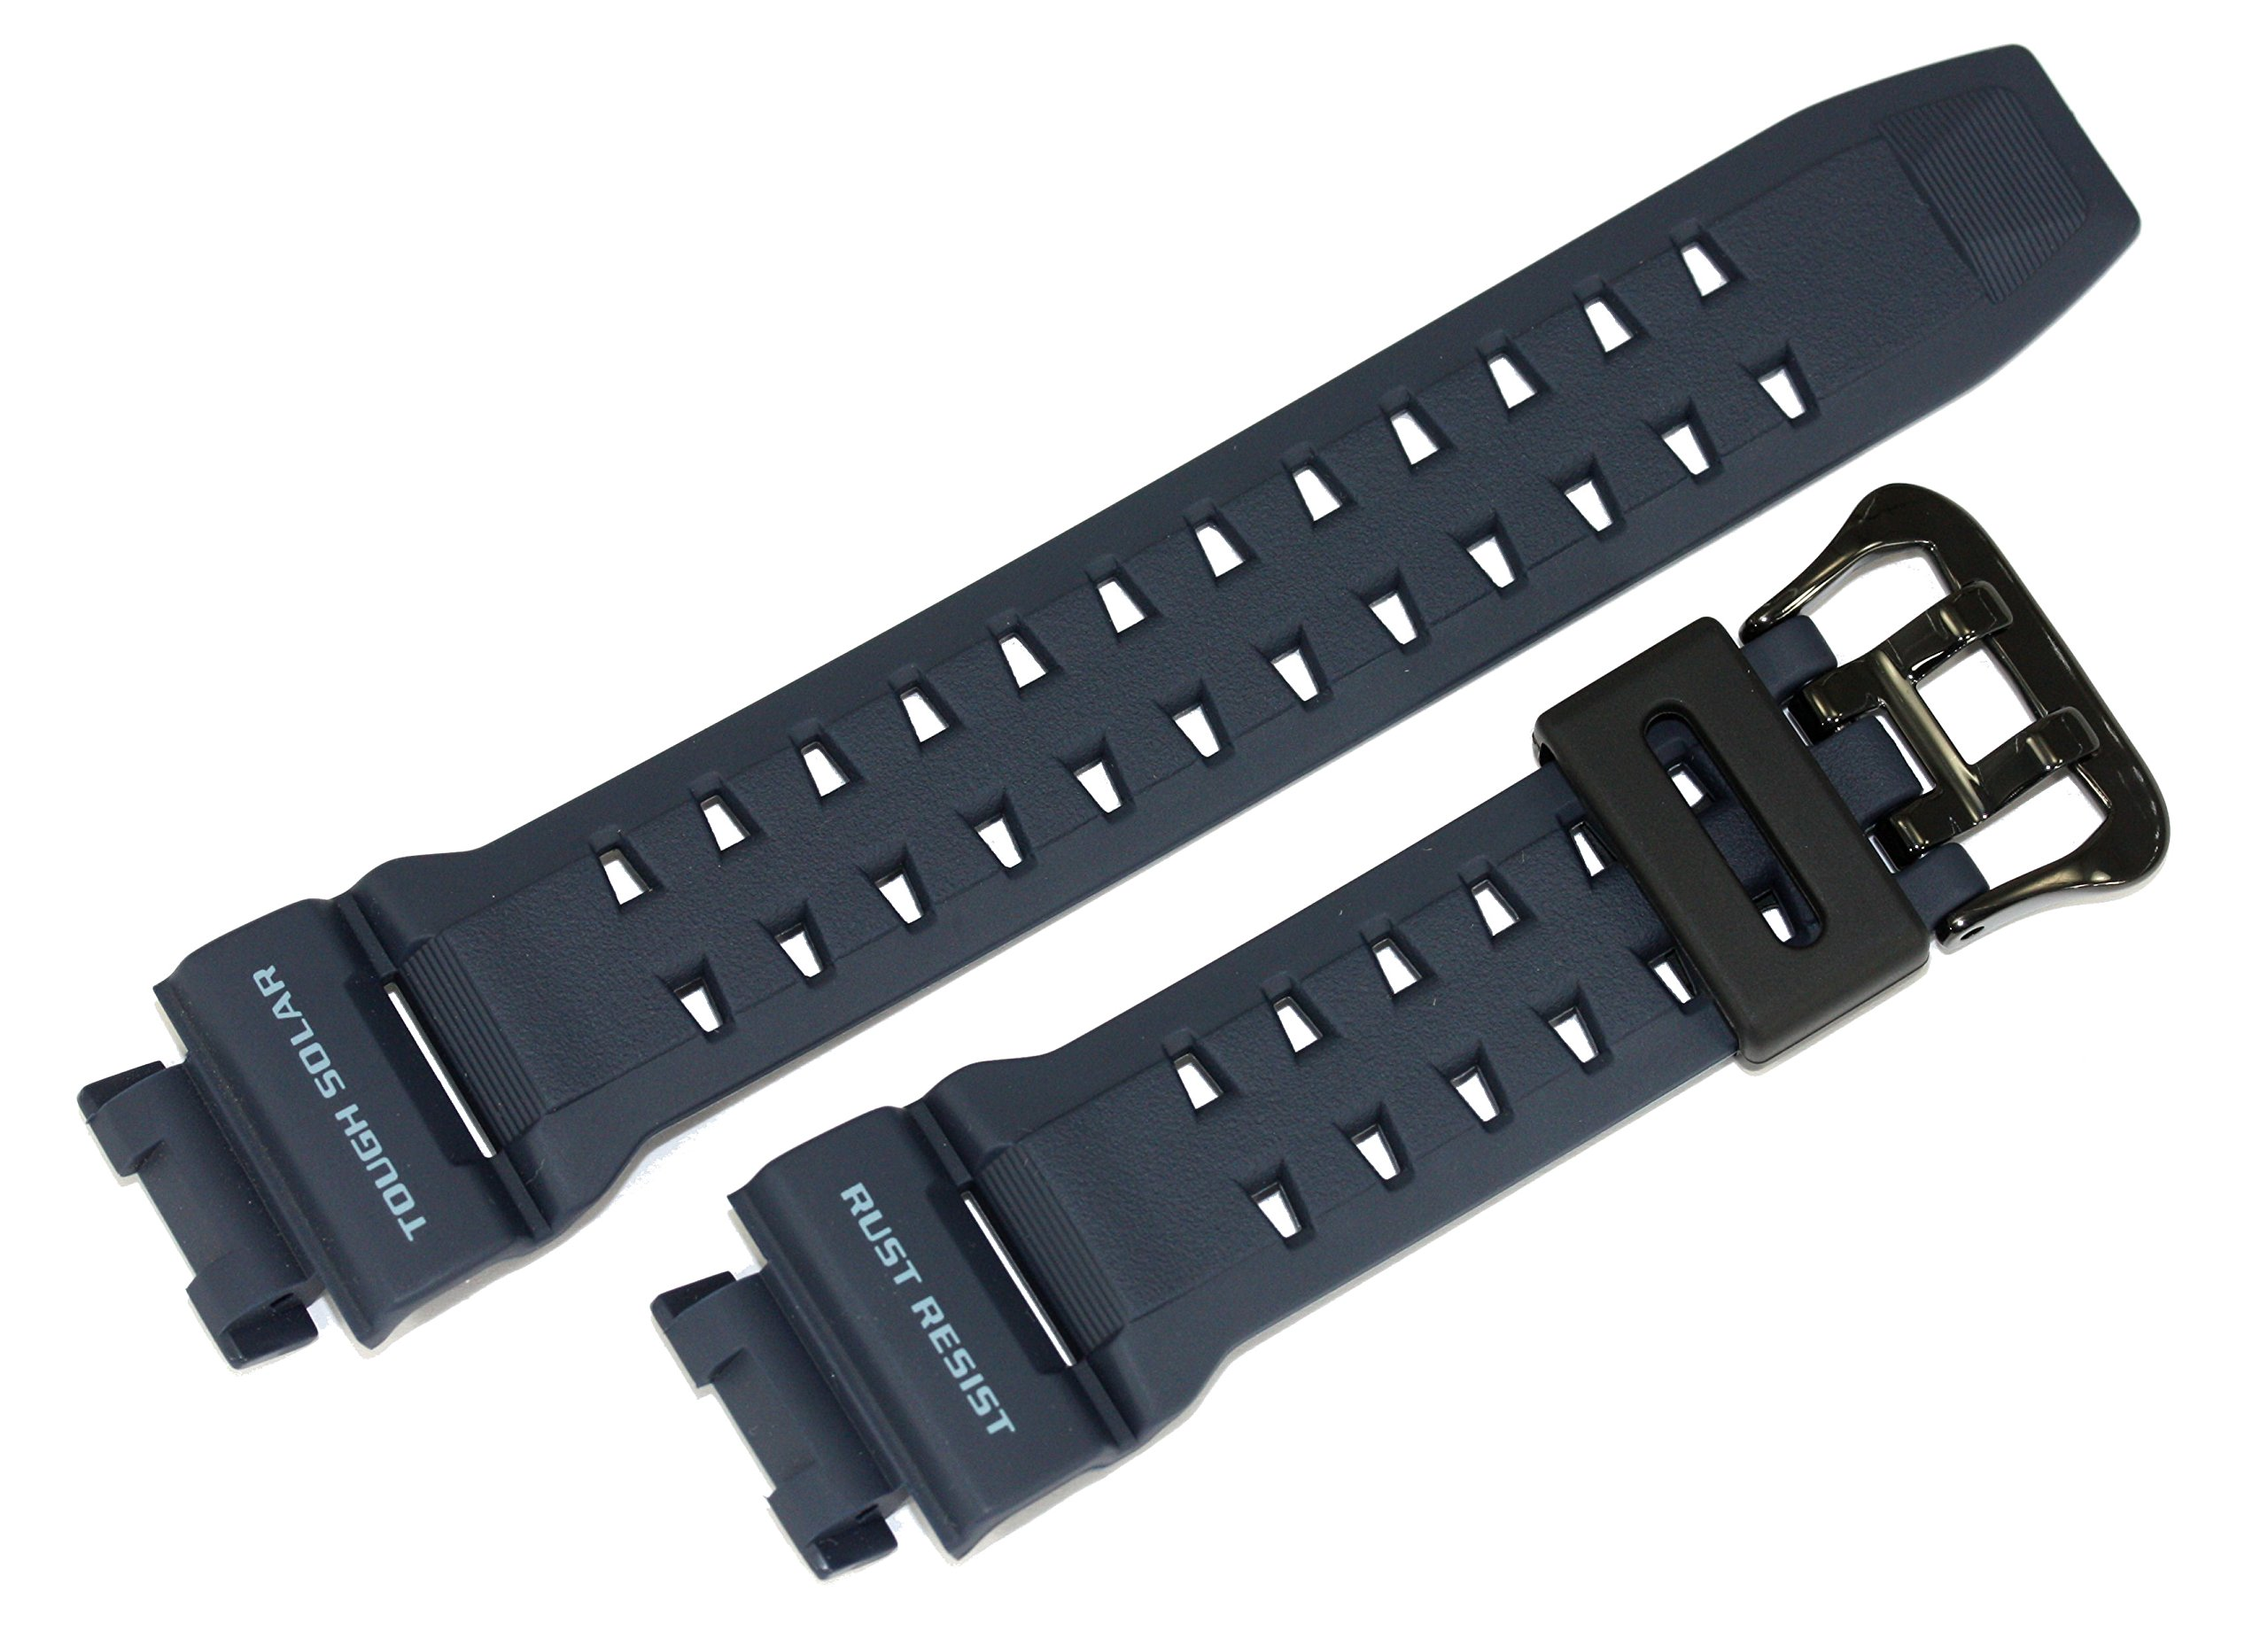 Casio 10410556 Genuine Factory Replacement Resin Band fits GR-9110ER-2 GW-9110ER-2